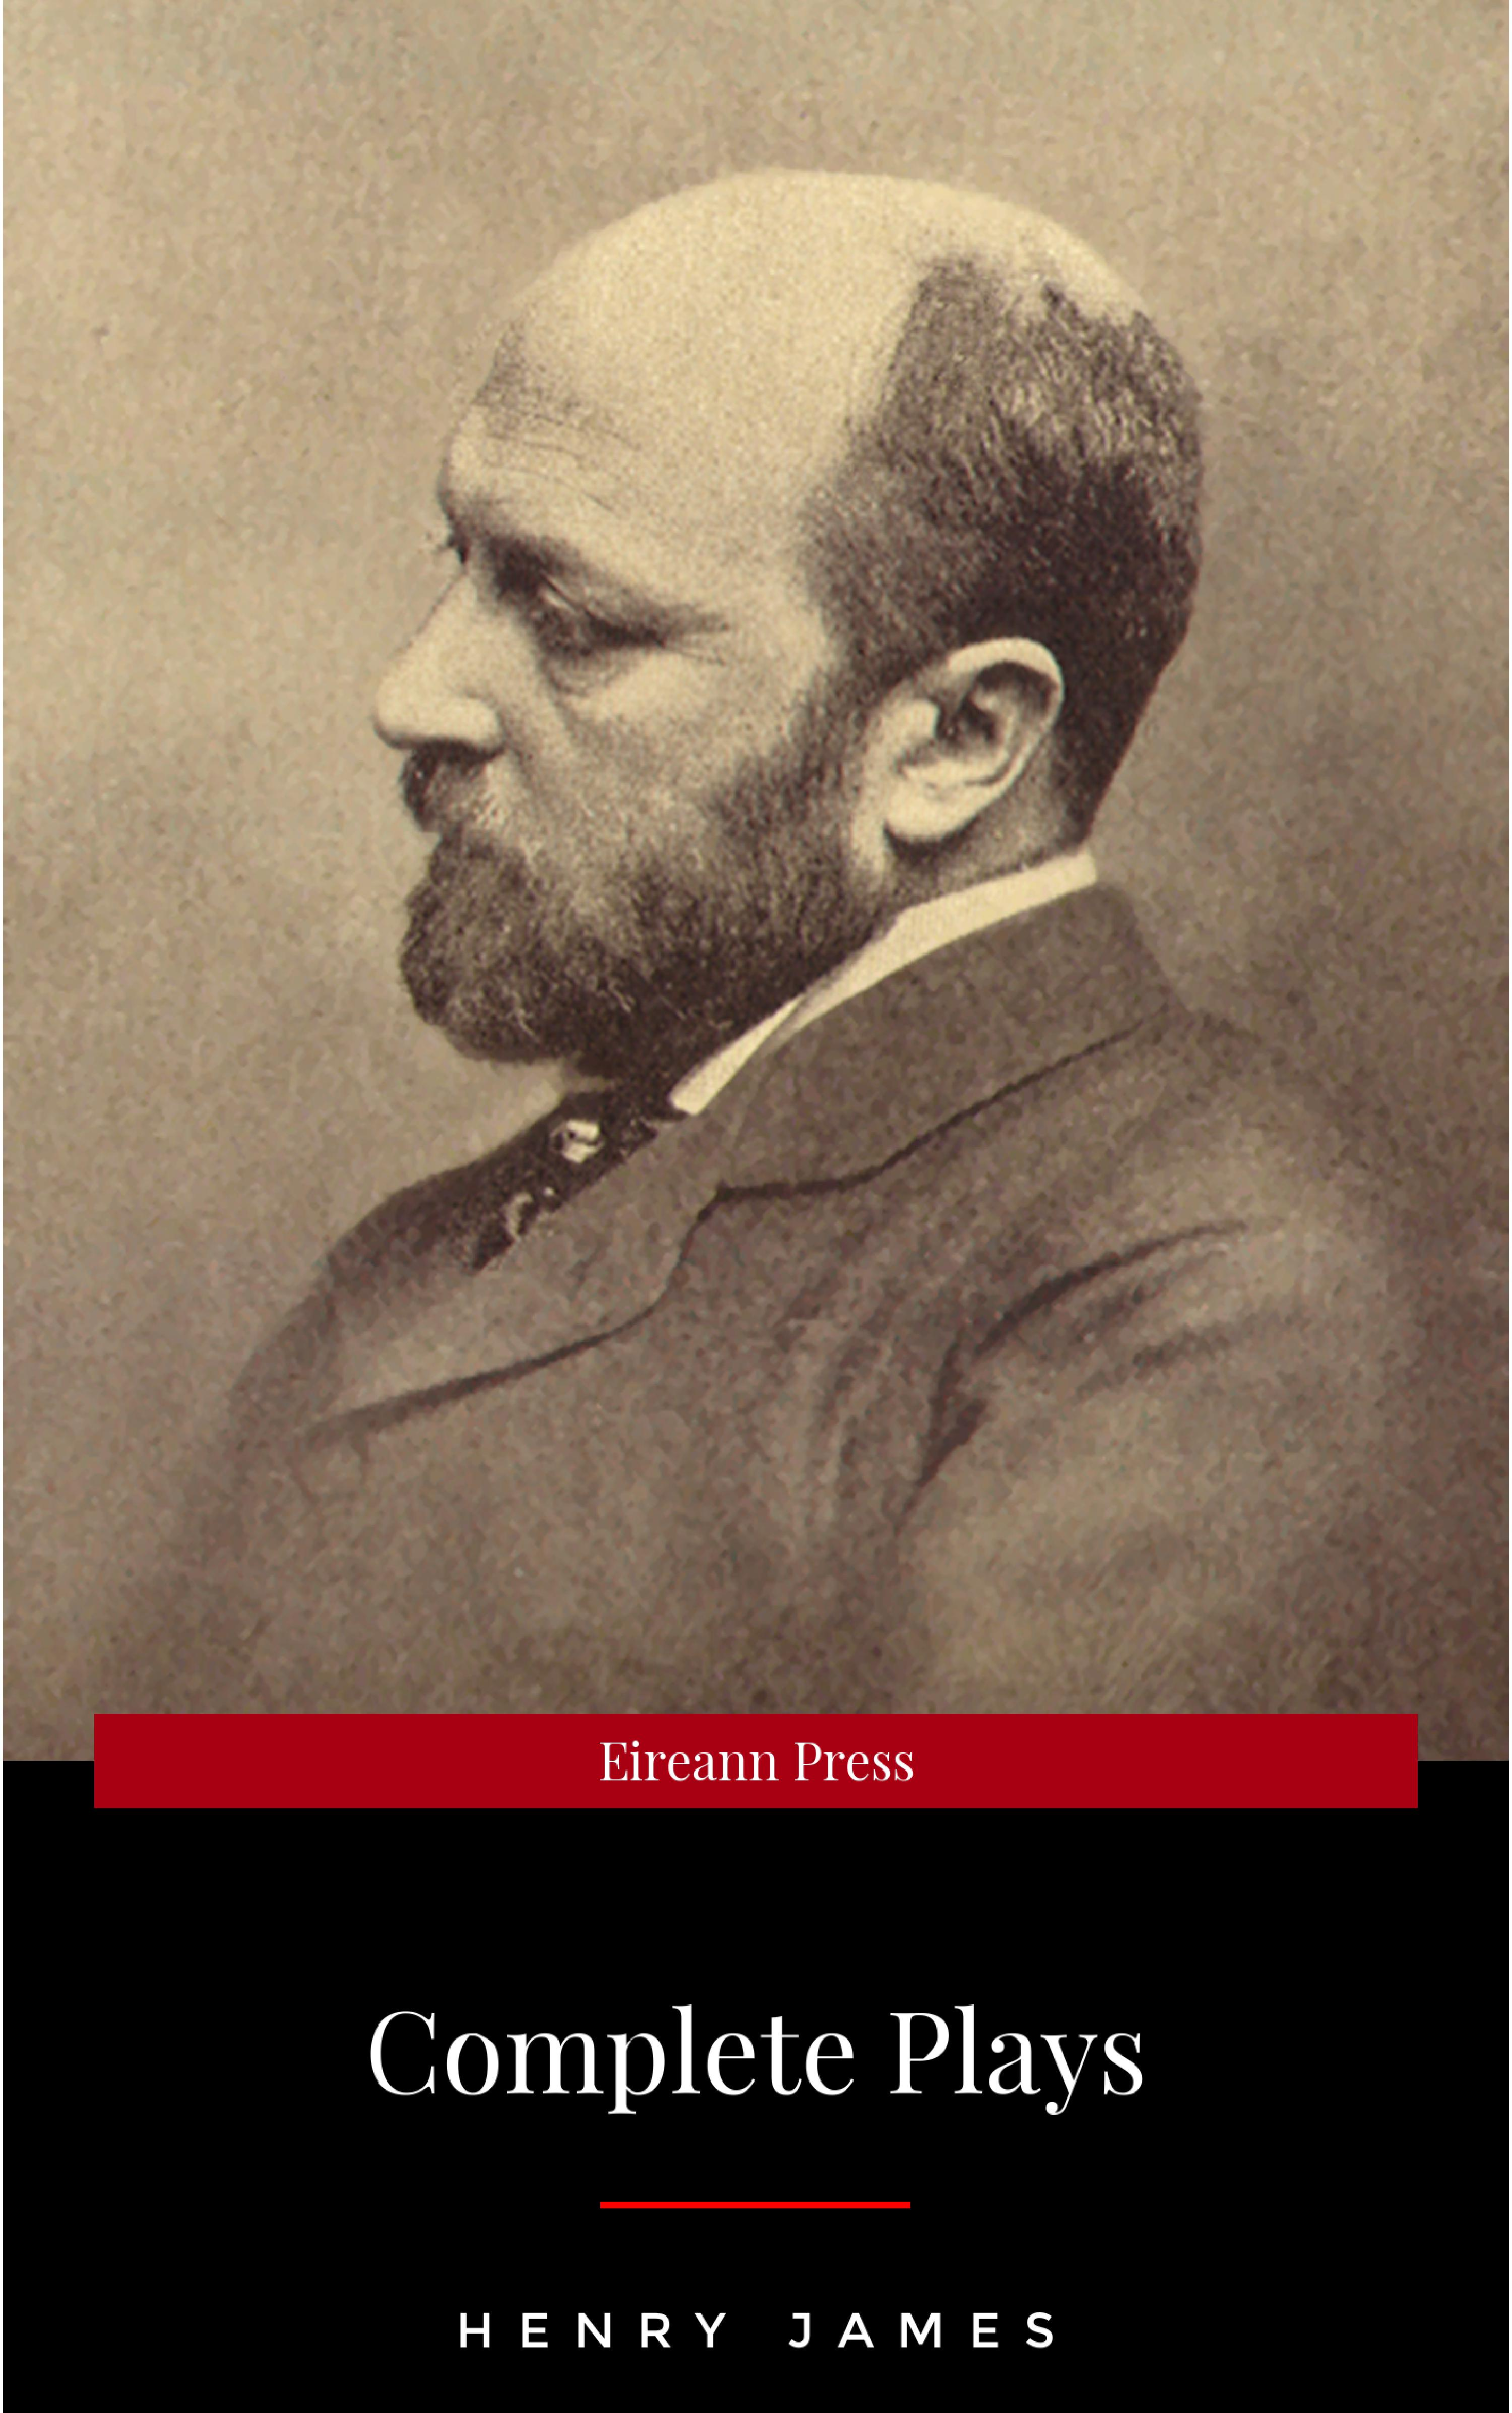 The Complete Plays of Henry James. Edited by L?ƒ?©on Edel. With plates, including portraits